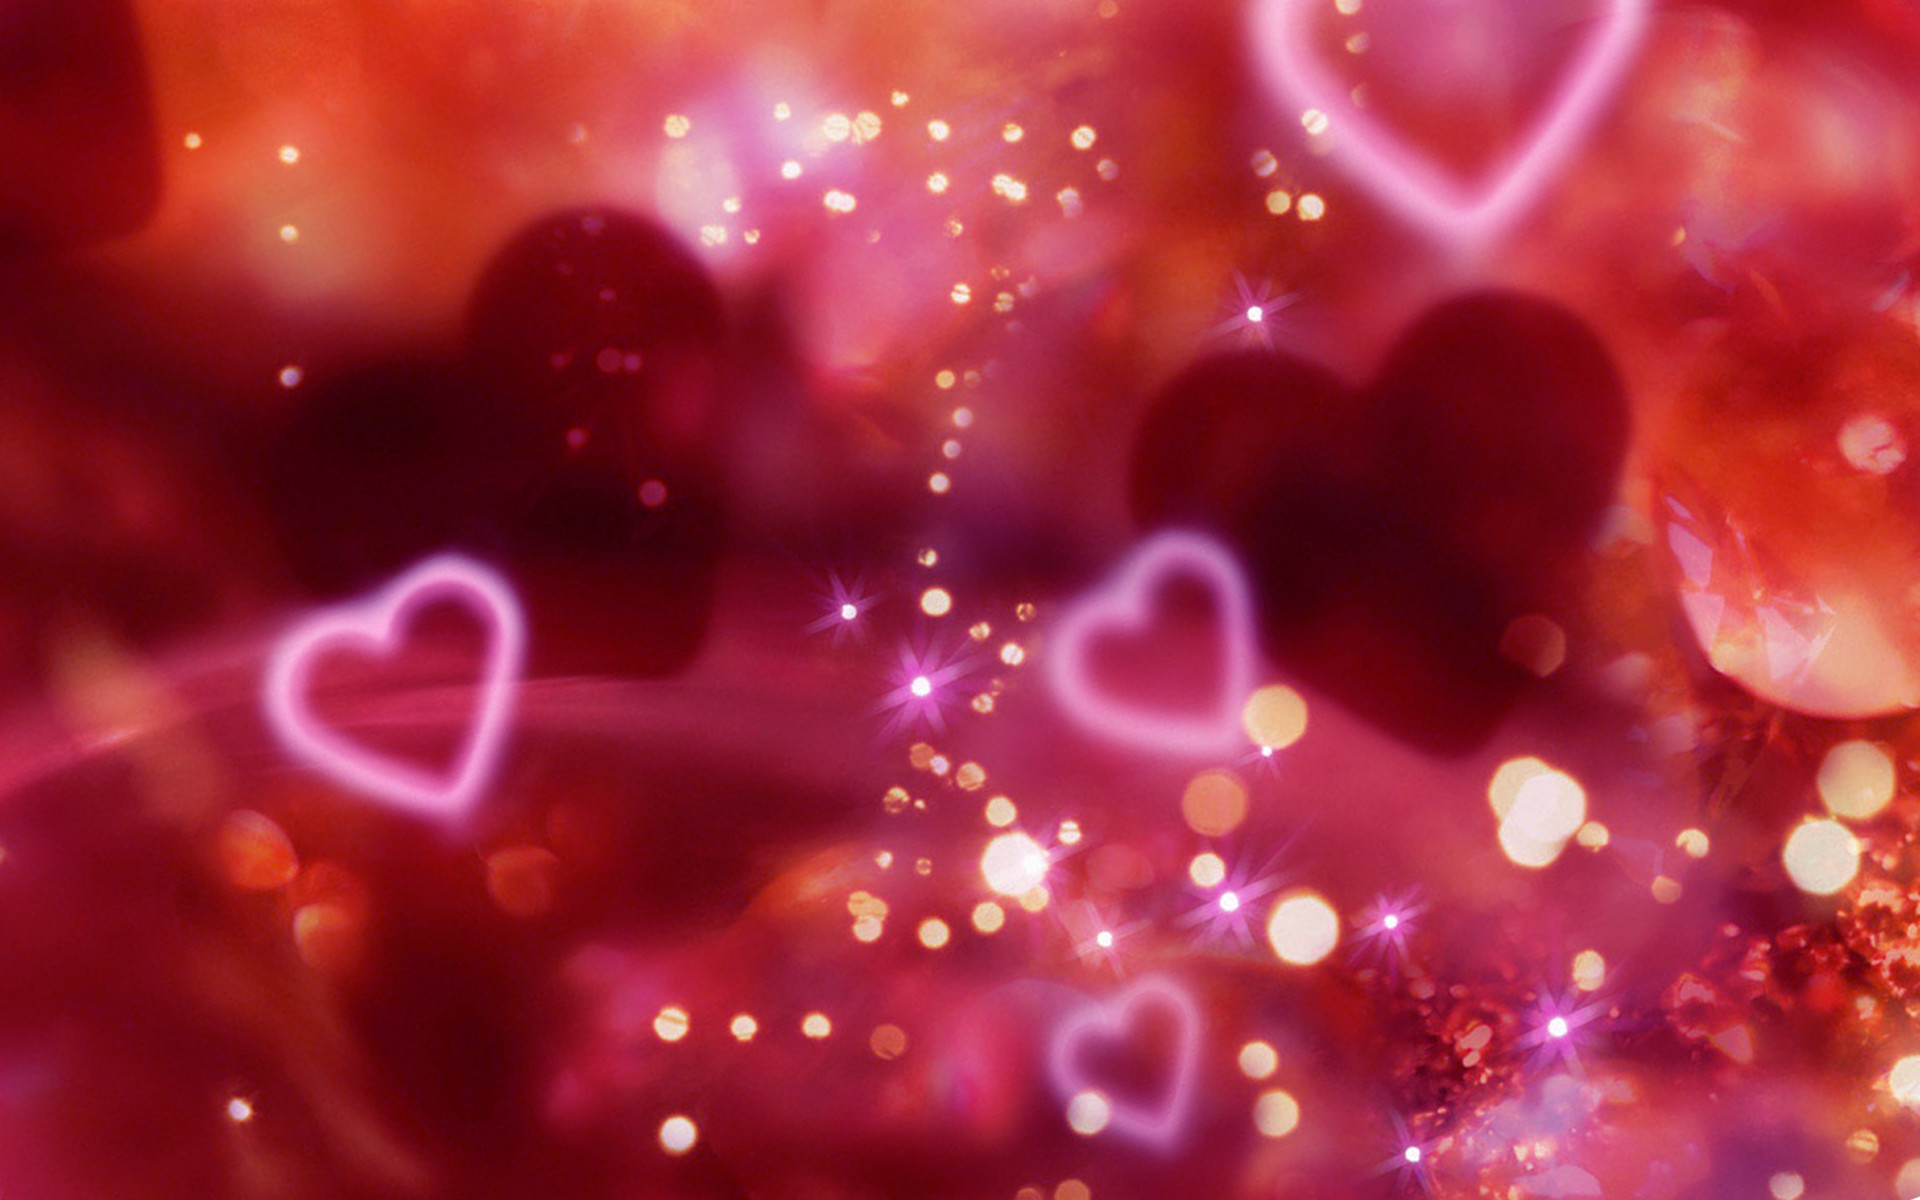 Wallpaper Valentines Day 72 Images